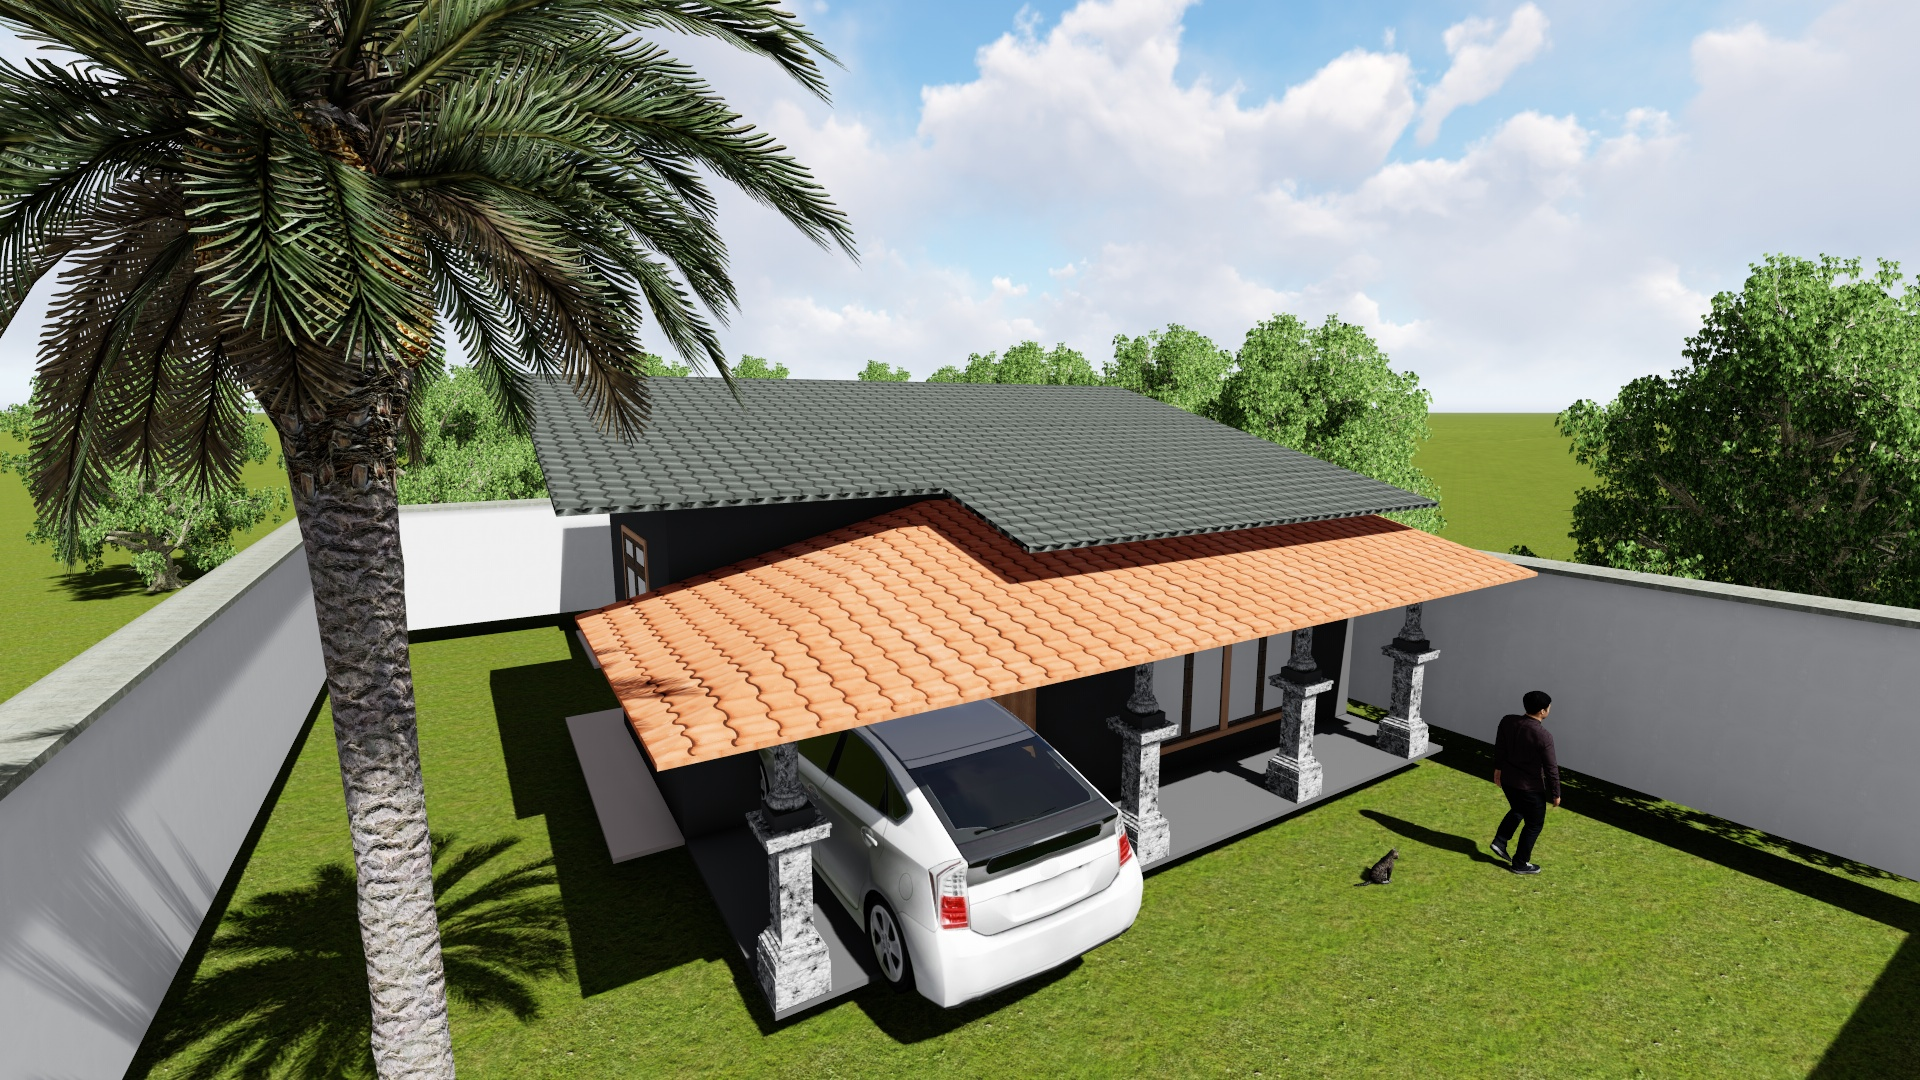 2D, Drawings, Home Design, Architectural Drawings,  KABANA Designs